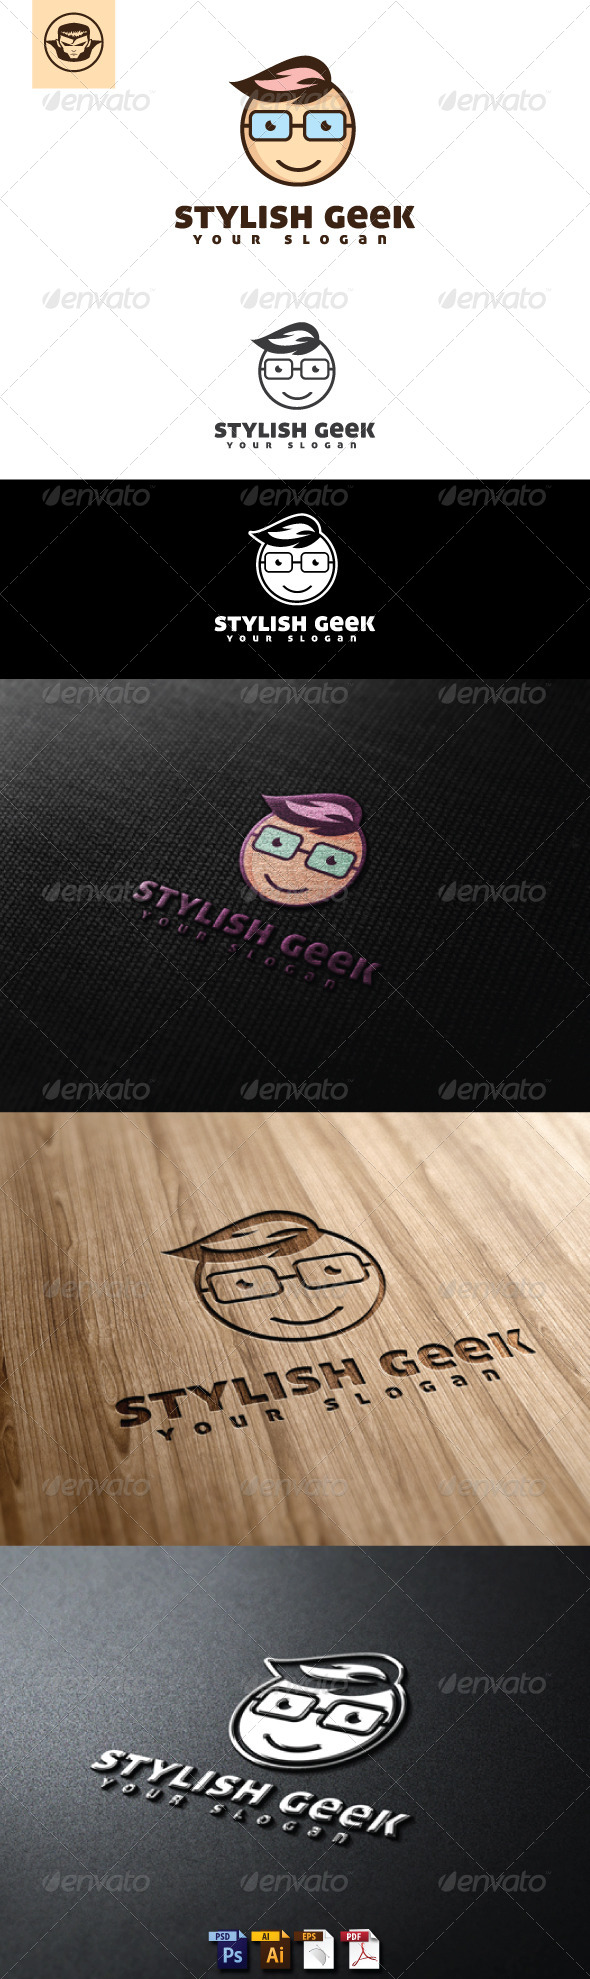 GraphicRiver Stylish Geek Logo Template 5005396